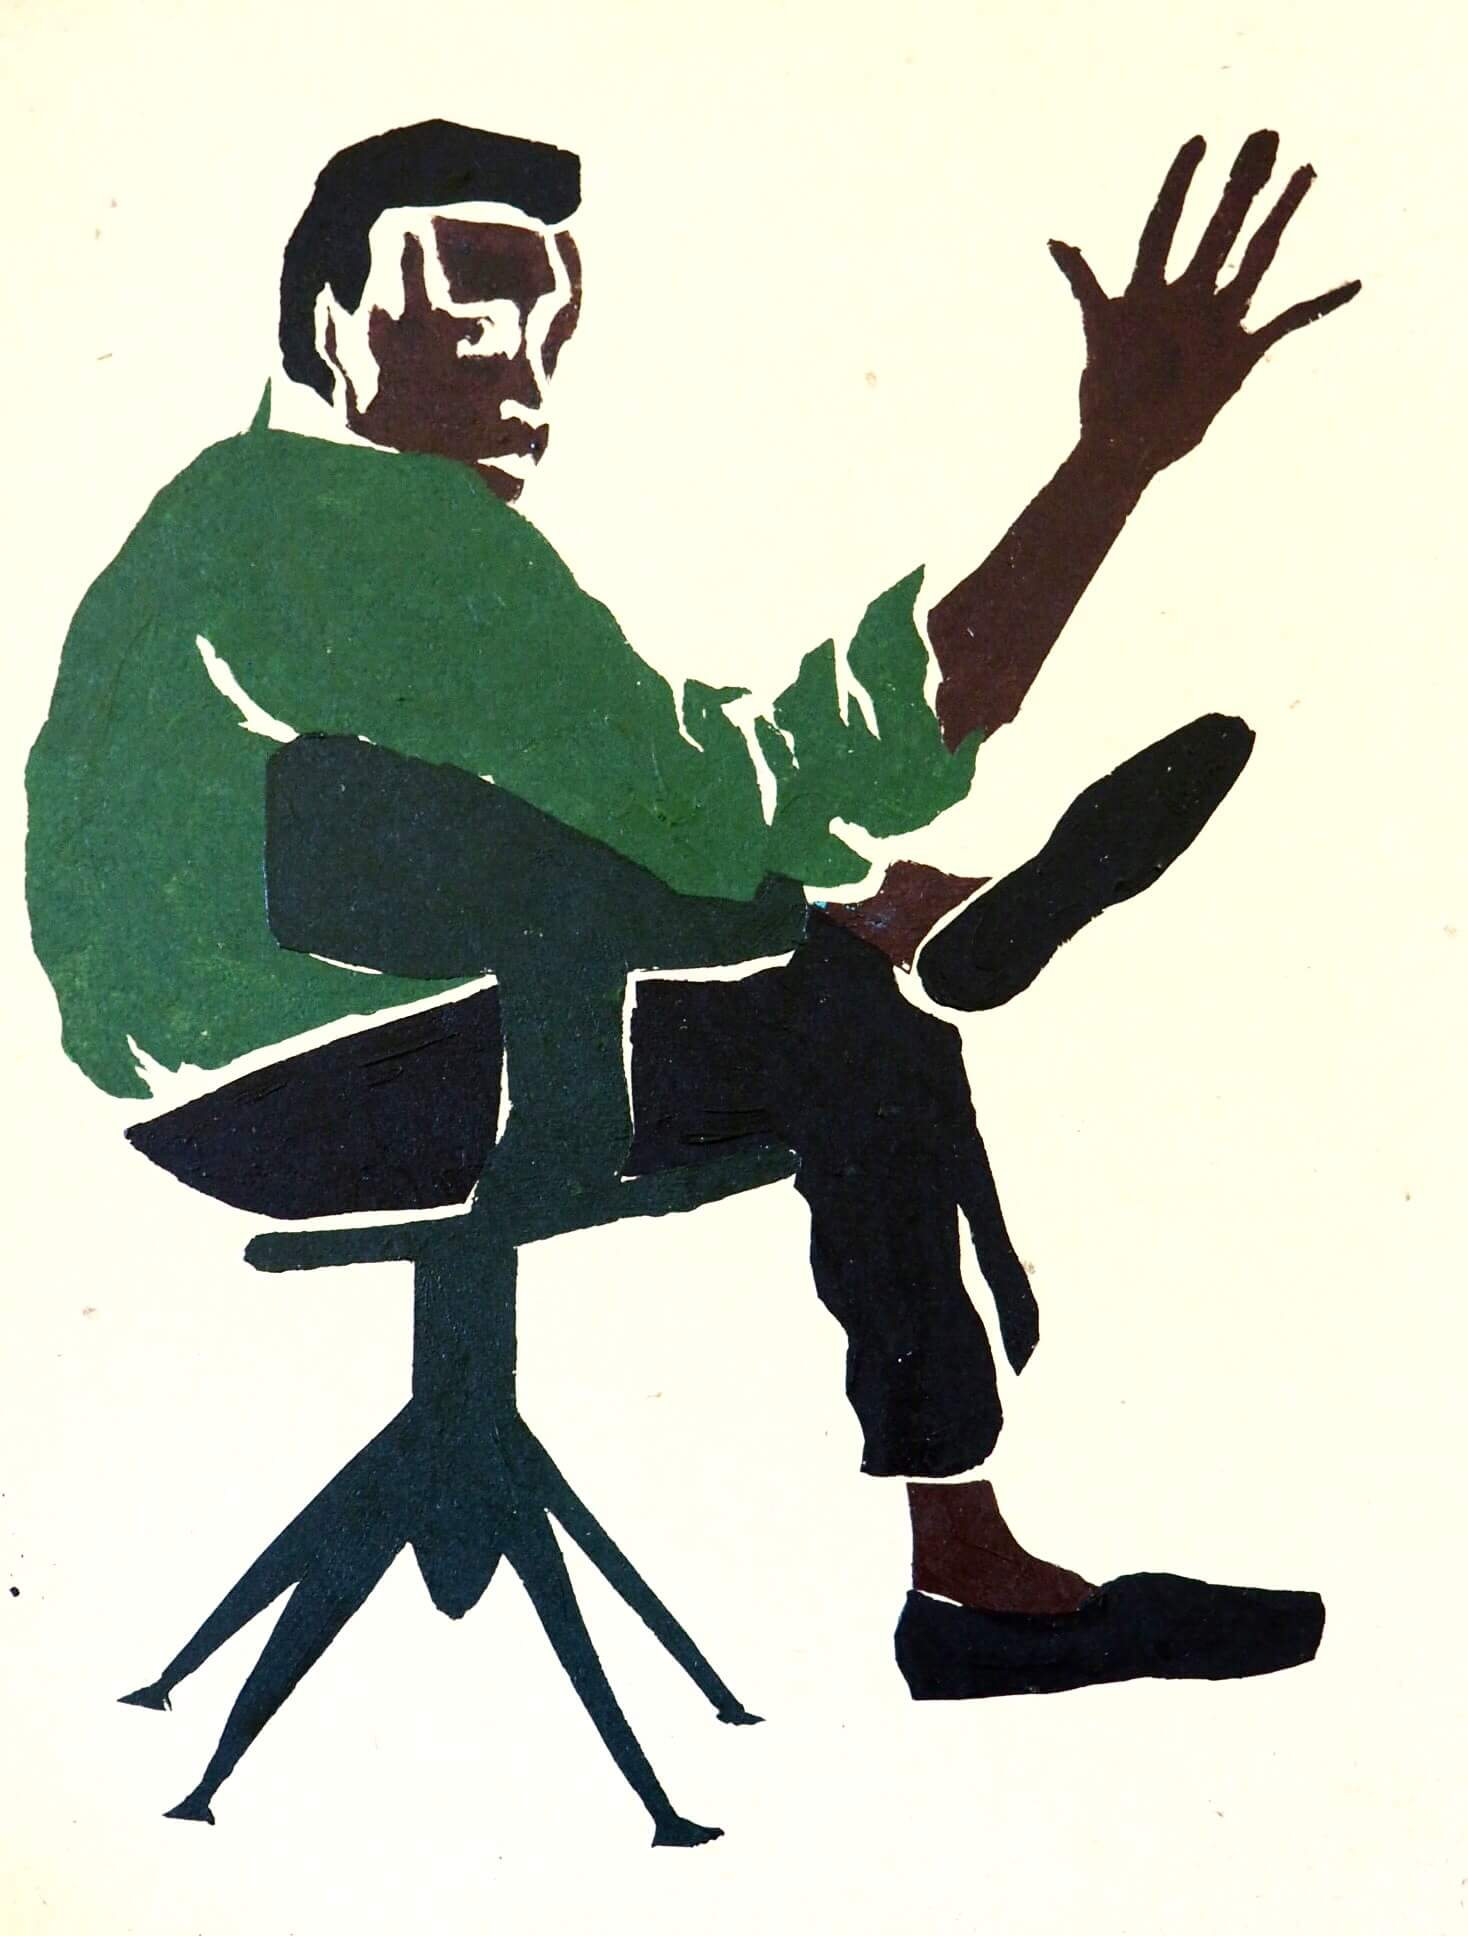 Jazz hands from Miles. (Based on a photograph by Tom Palumbo) —Ella